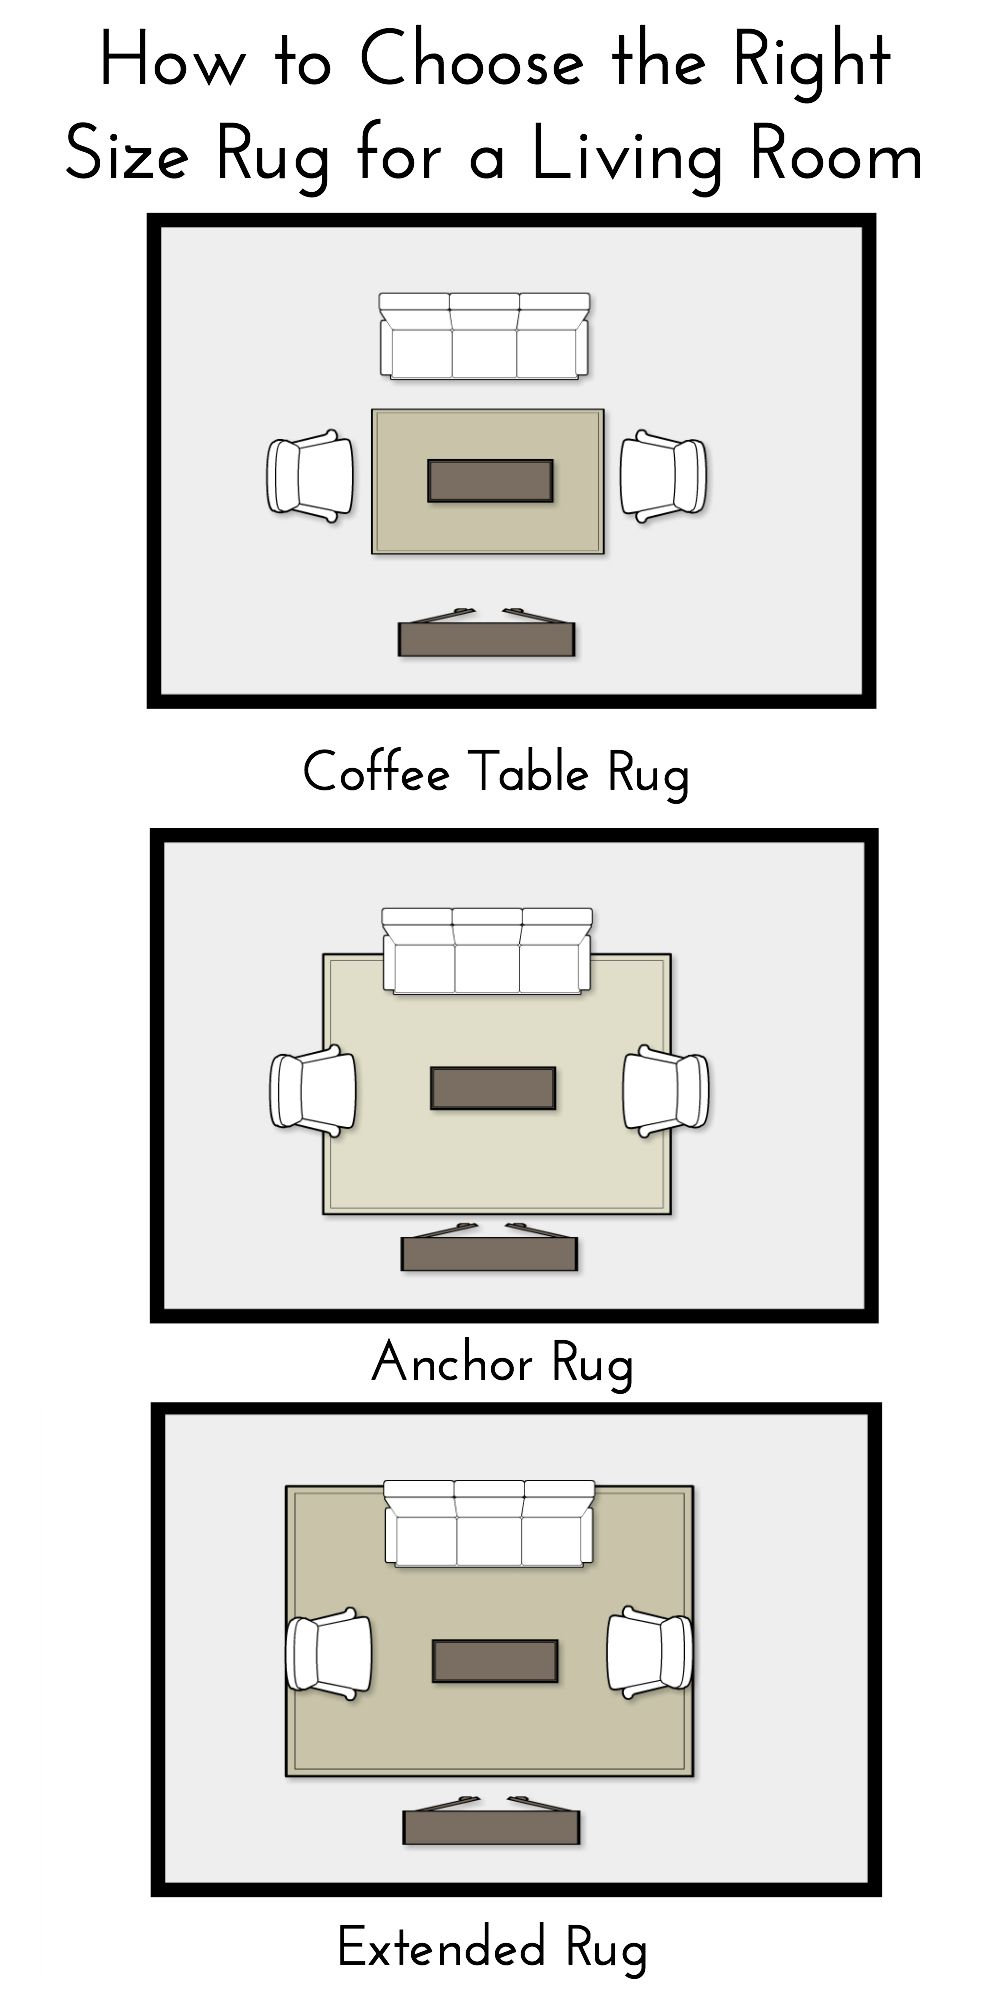 What Size Rug For Living Room How To Choose The Right Size Rug For A Living Room Diy Decorator